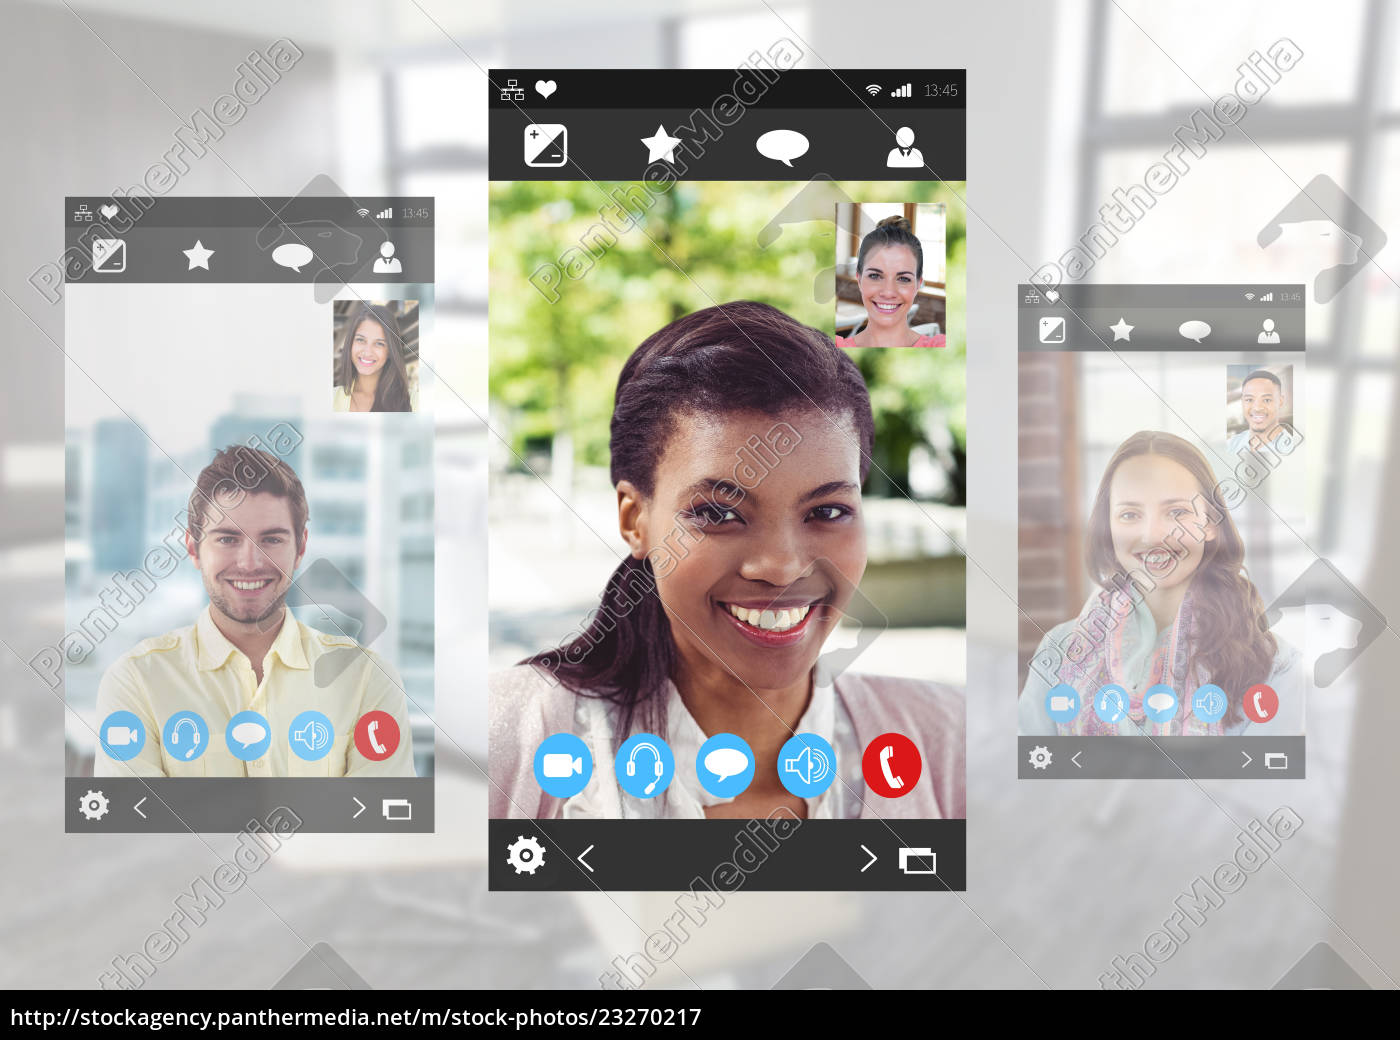 social, video, chat, app, interface - 23270217